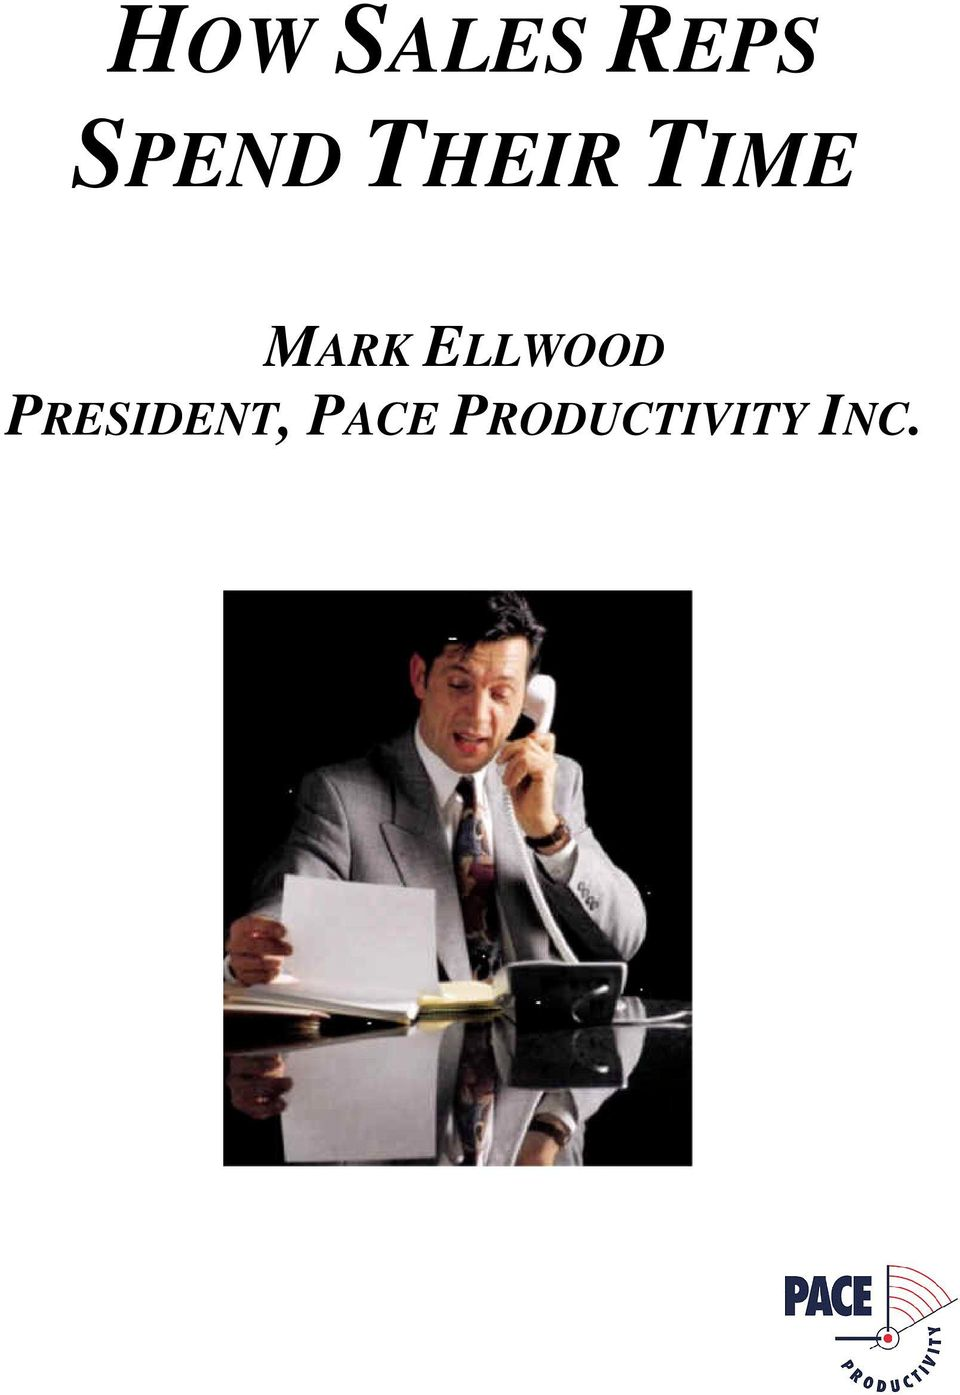 MARK ELLWOOD